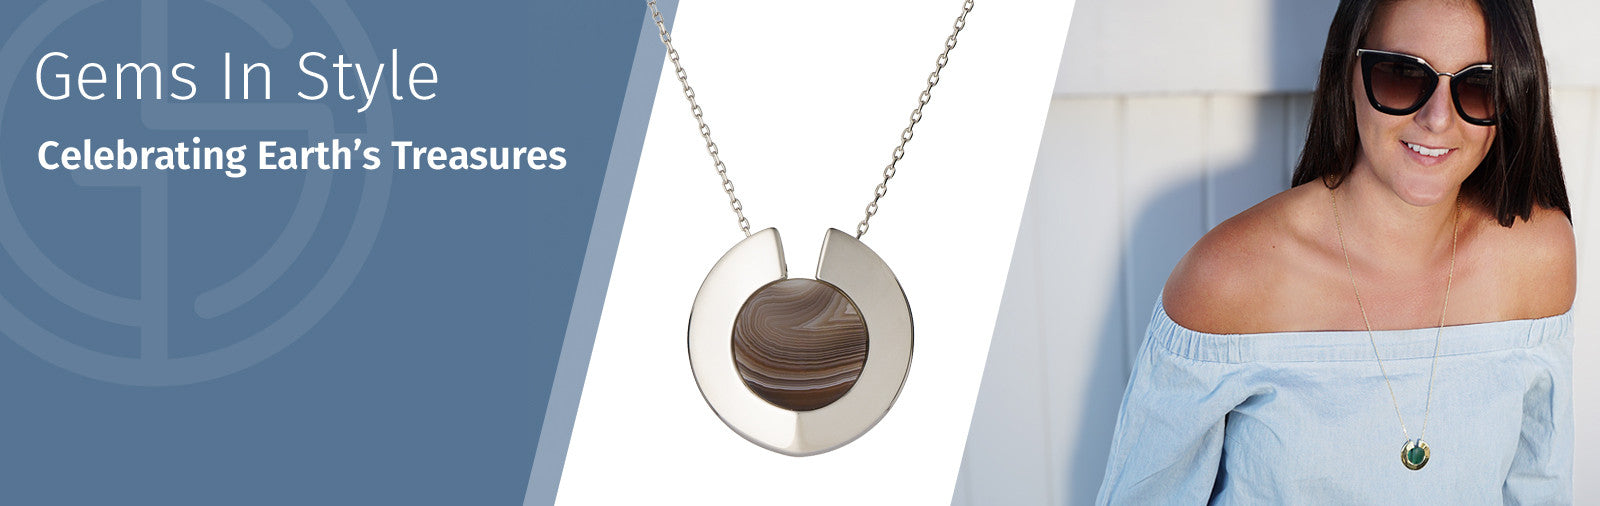 Agate necklace by Gems In Style, 925 Sterling Silver, Rhodium plating. Australian Gemstone Jewellery Brand